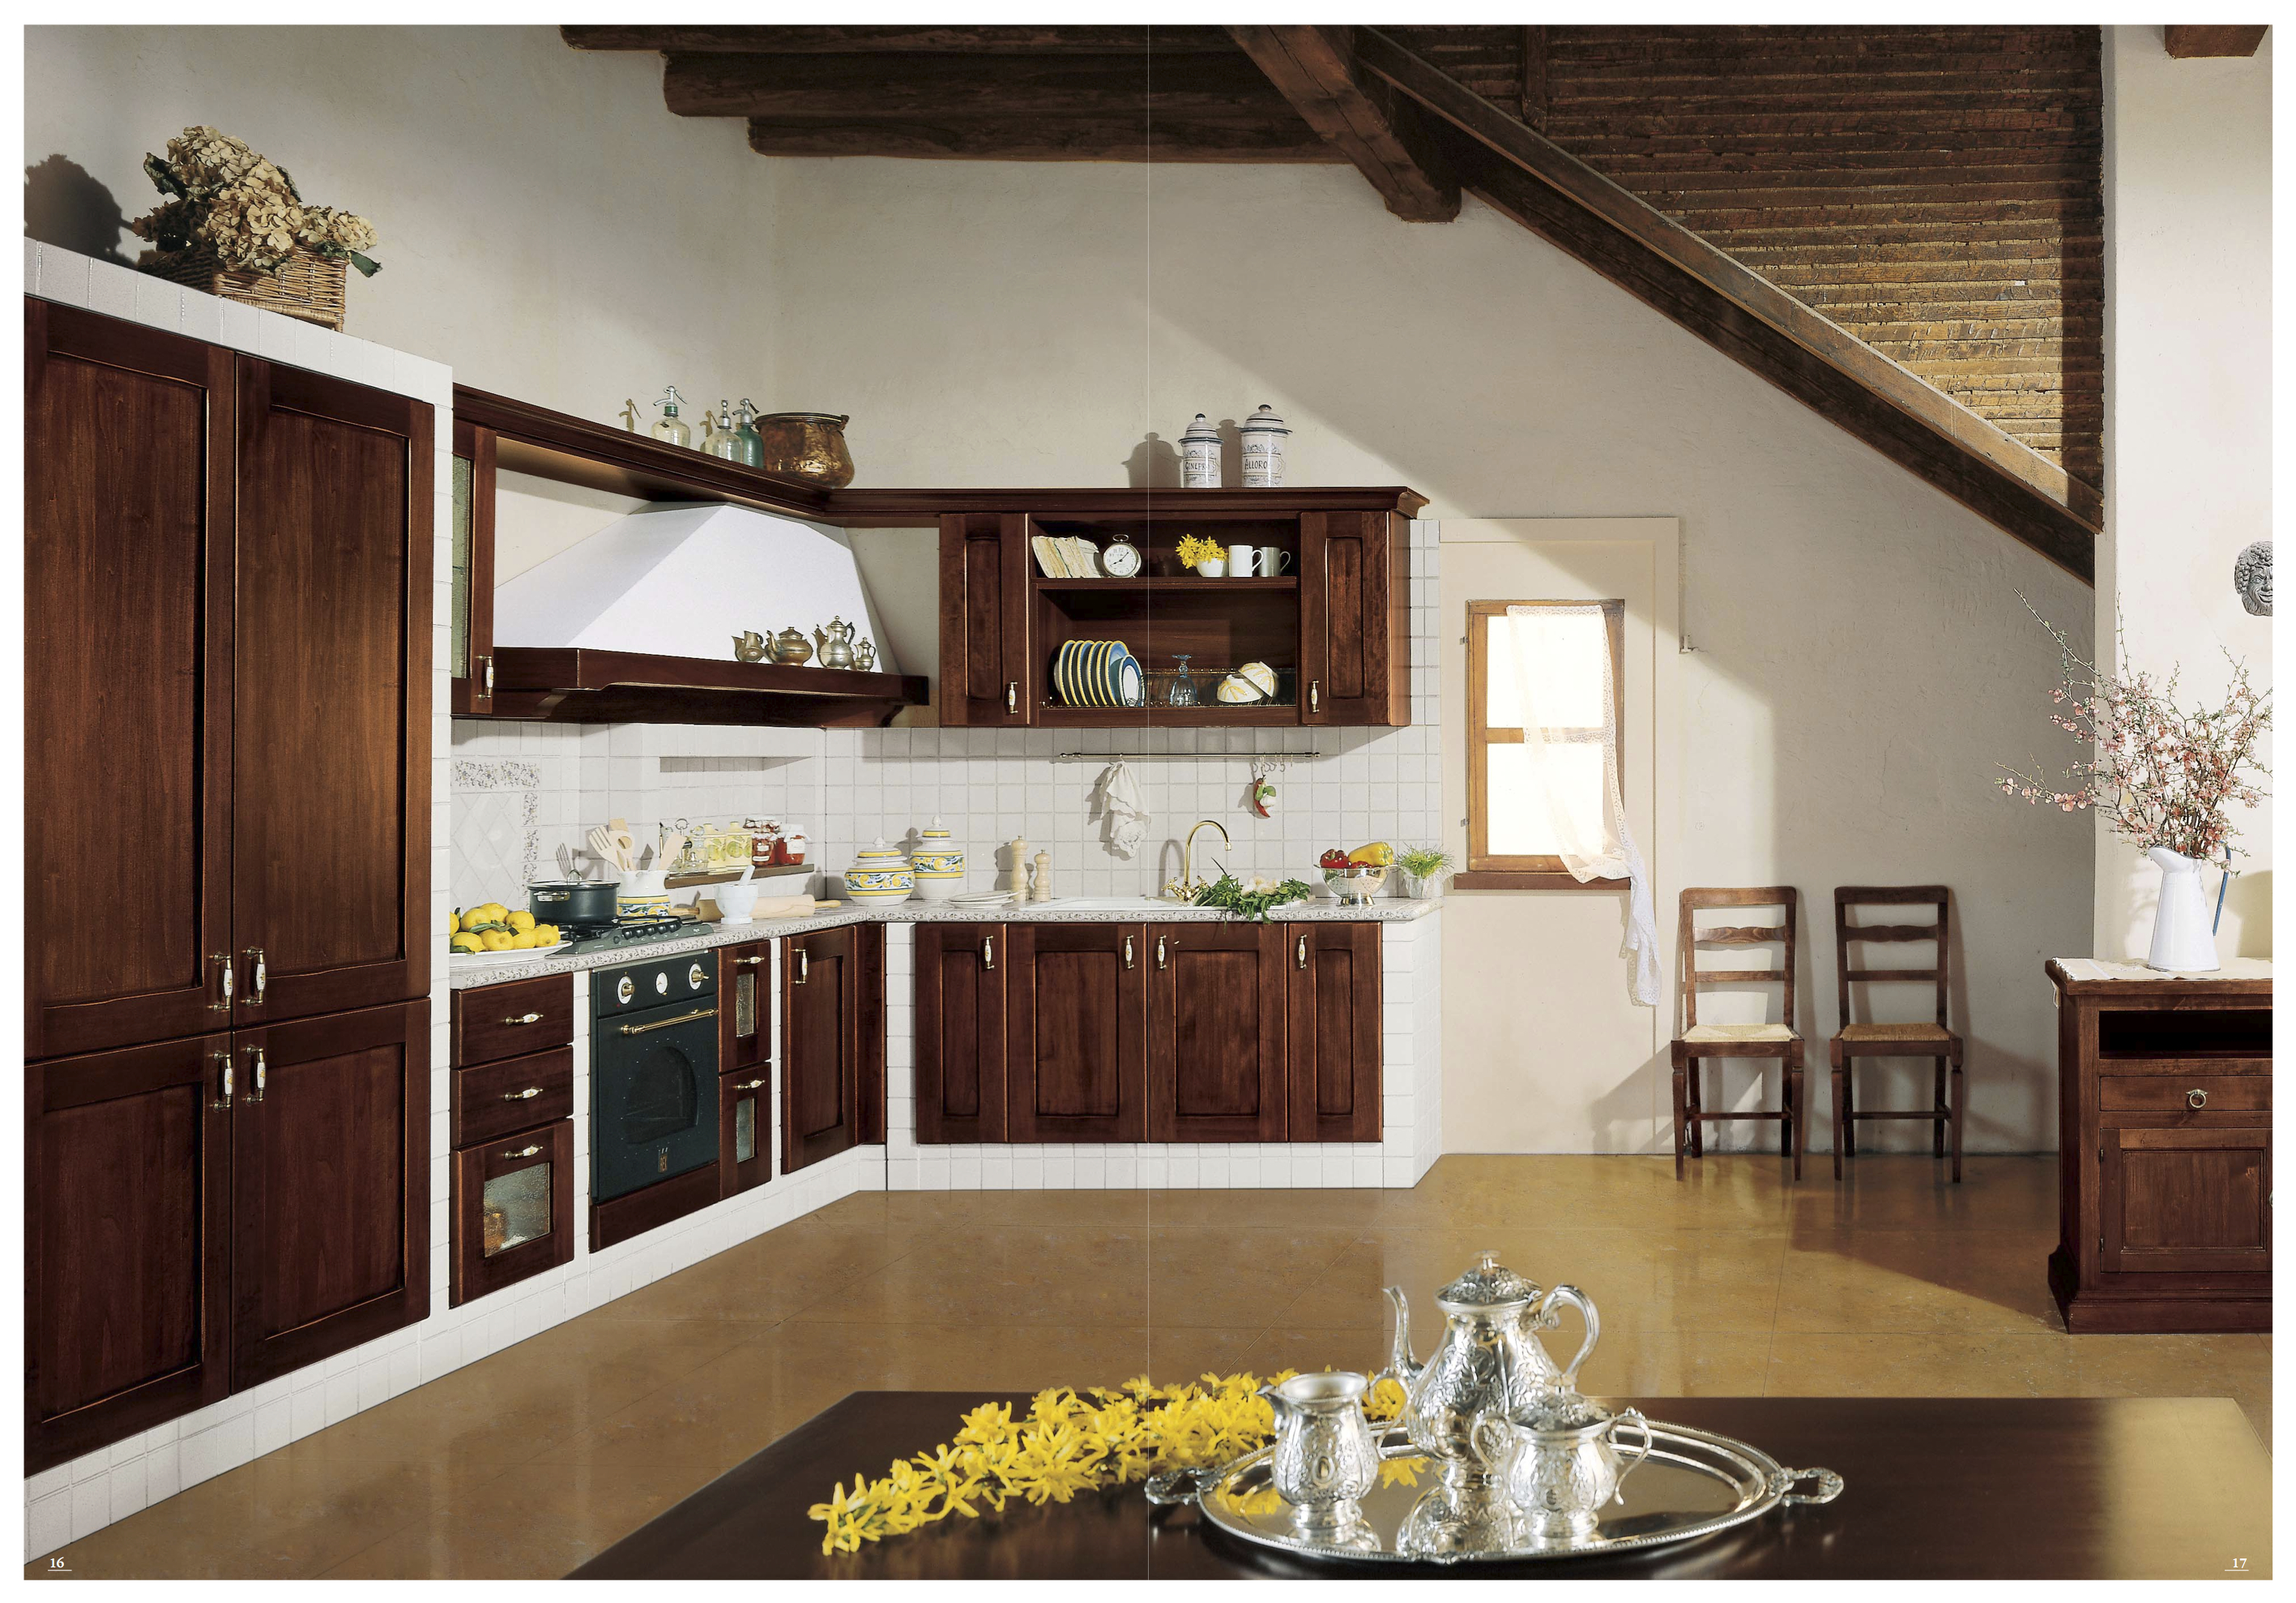 Classic kitchens visionary kitchens custom cabinetry for Classic kitchen decor